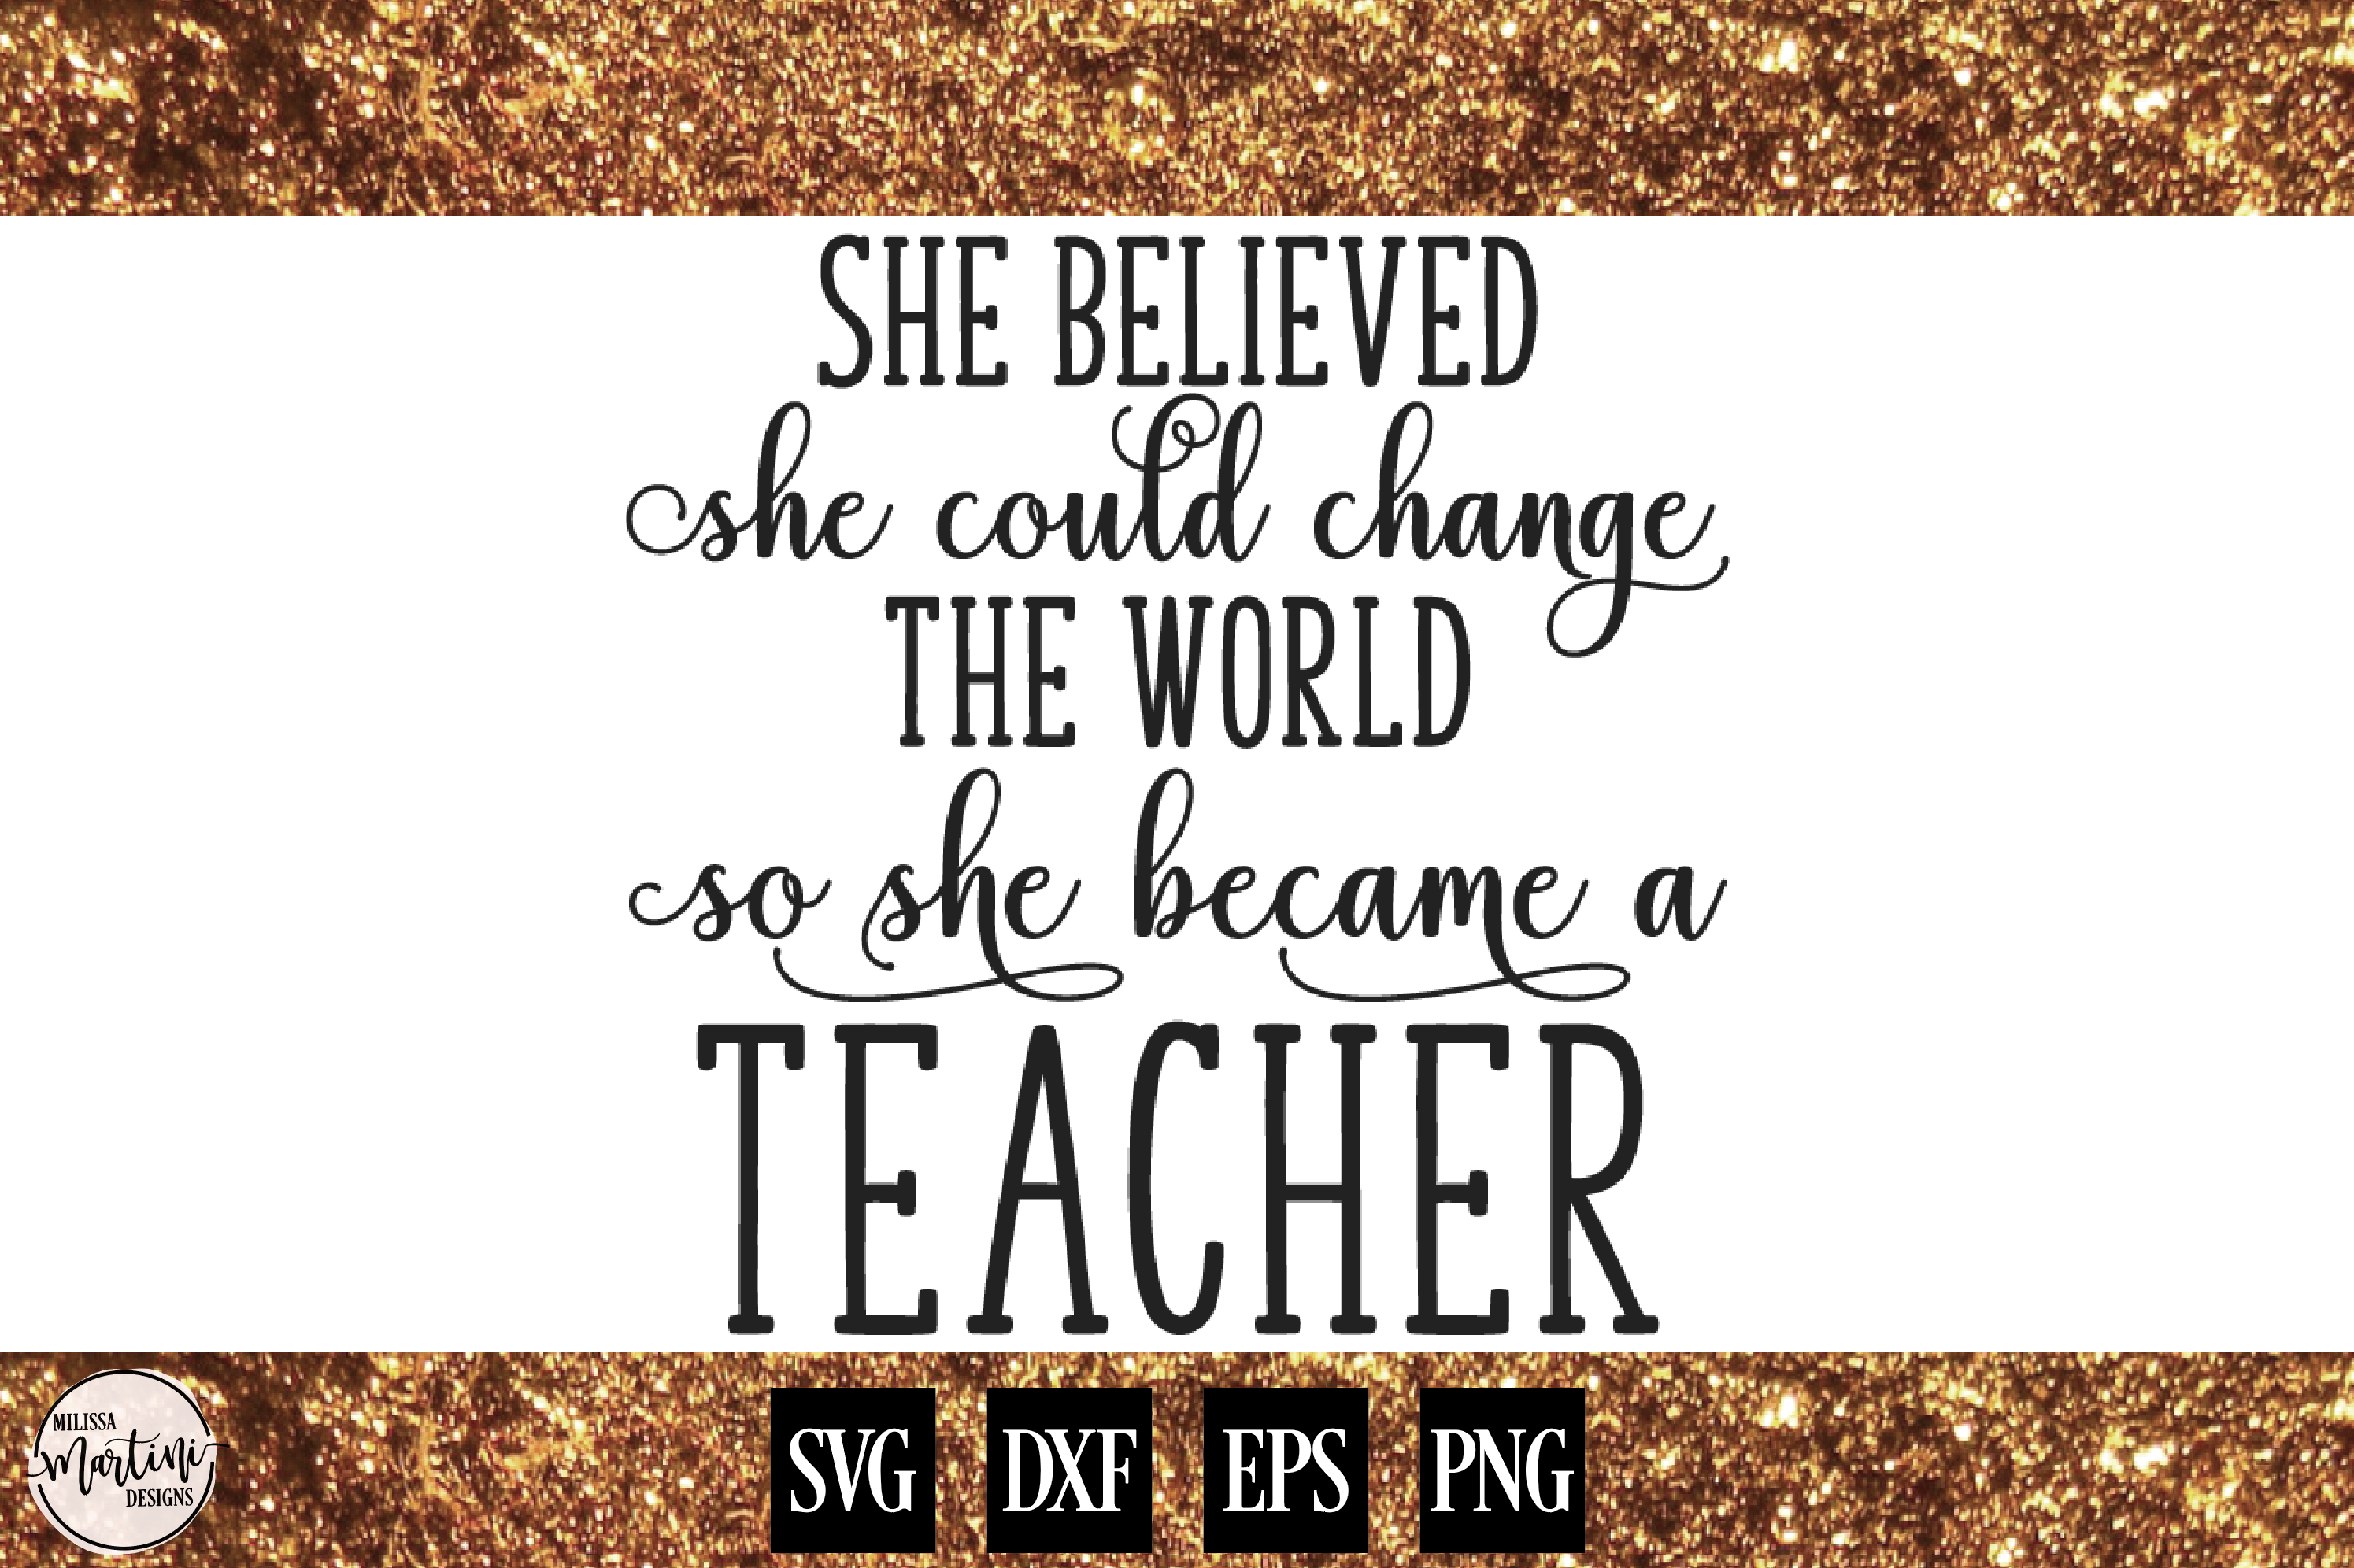 She Believed She Could Change The World example image 1